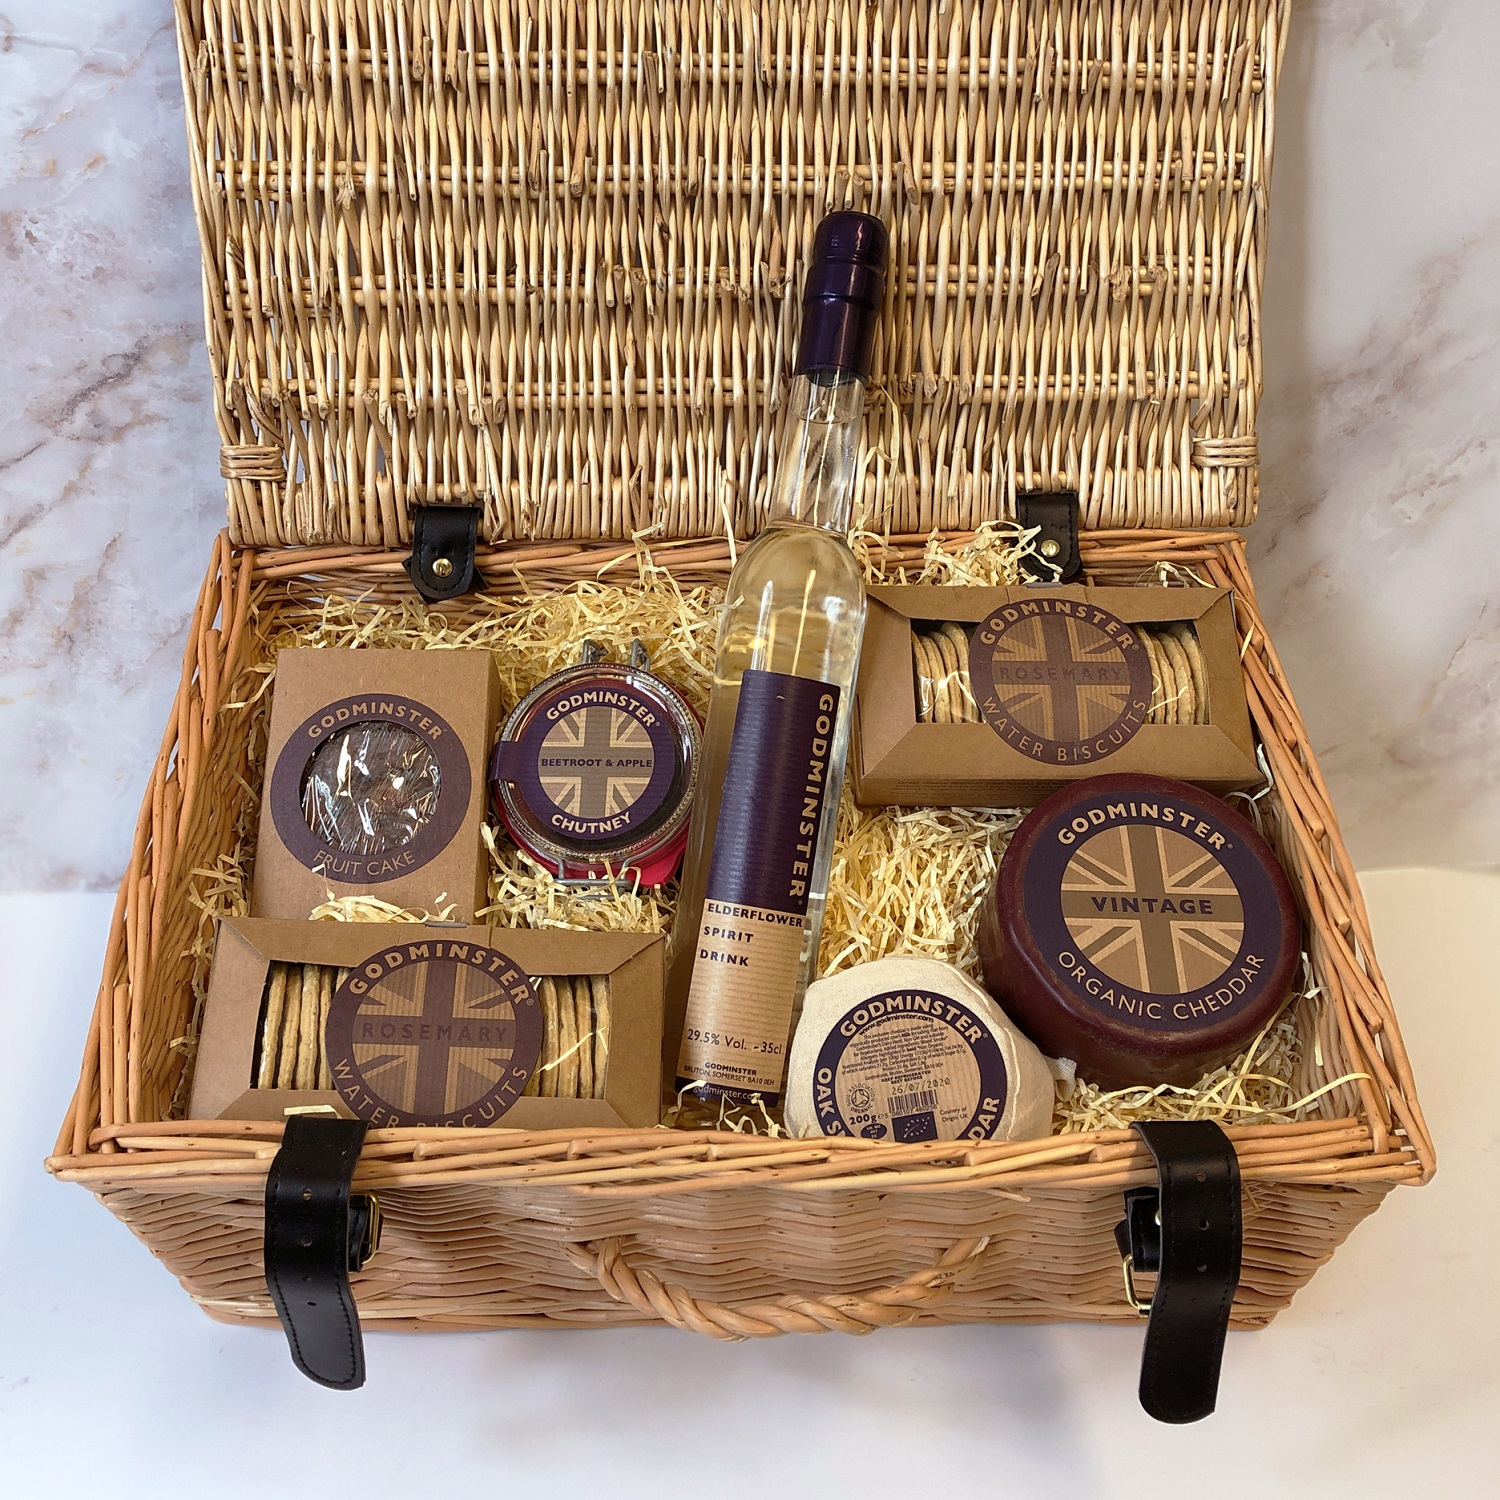 Win delicious Godminster Organic hampers